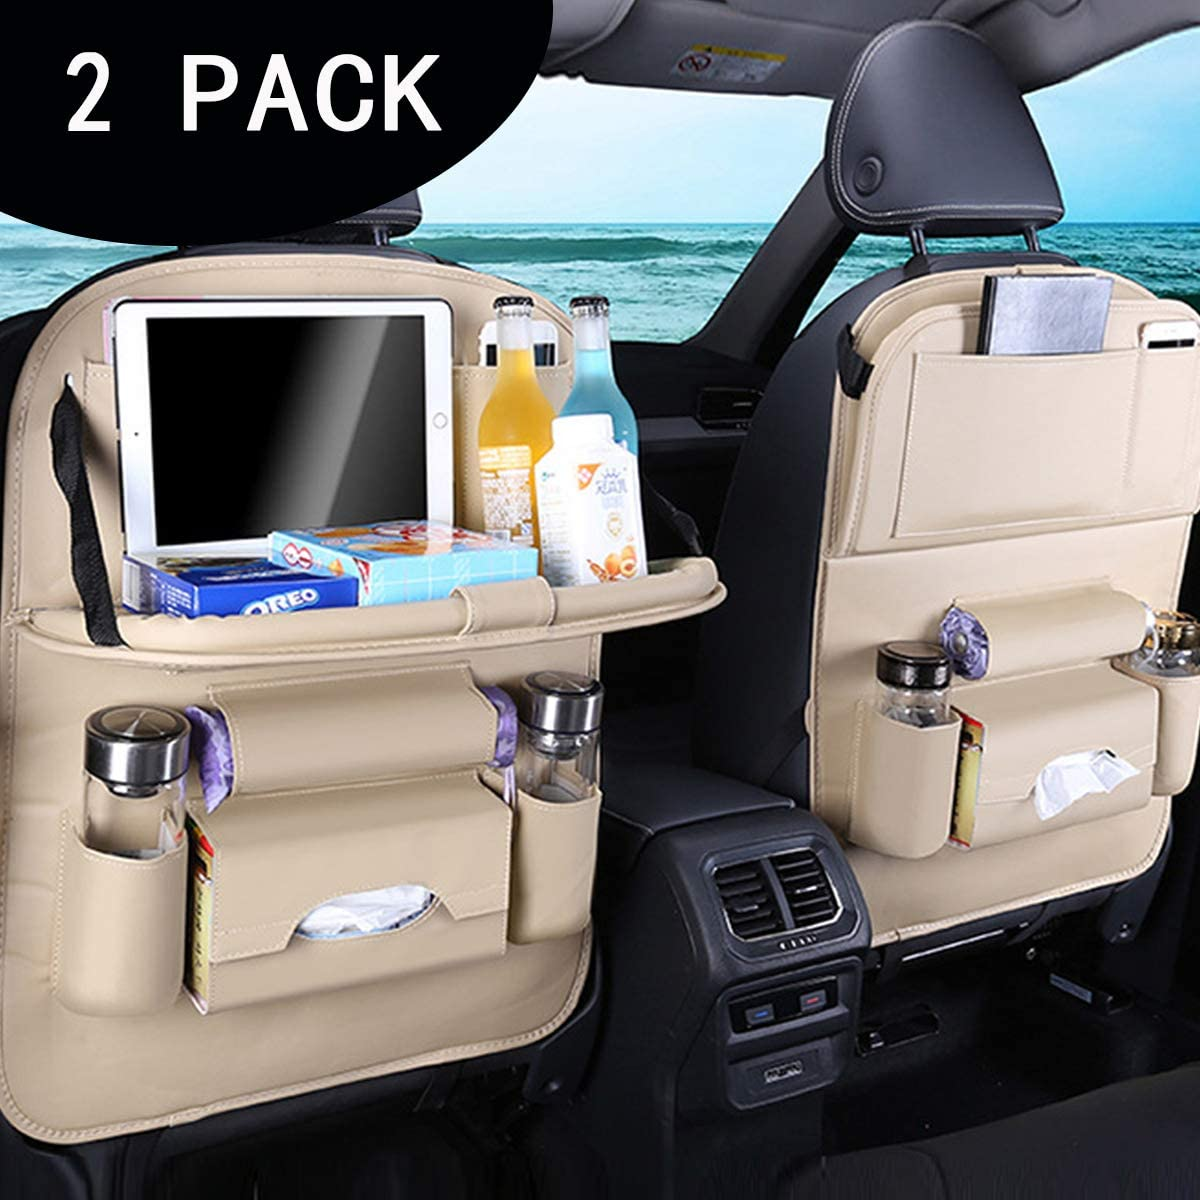 TYSKL Car Back Seat Organizers,PU Leather Car Back Seat Organizer,Back Seat Organizer with Tray and Storage Leather for Kids Toy Bottle Drink Vehicles Travel Accessories (2 - Pack, Beige)